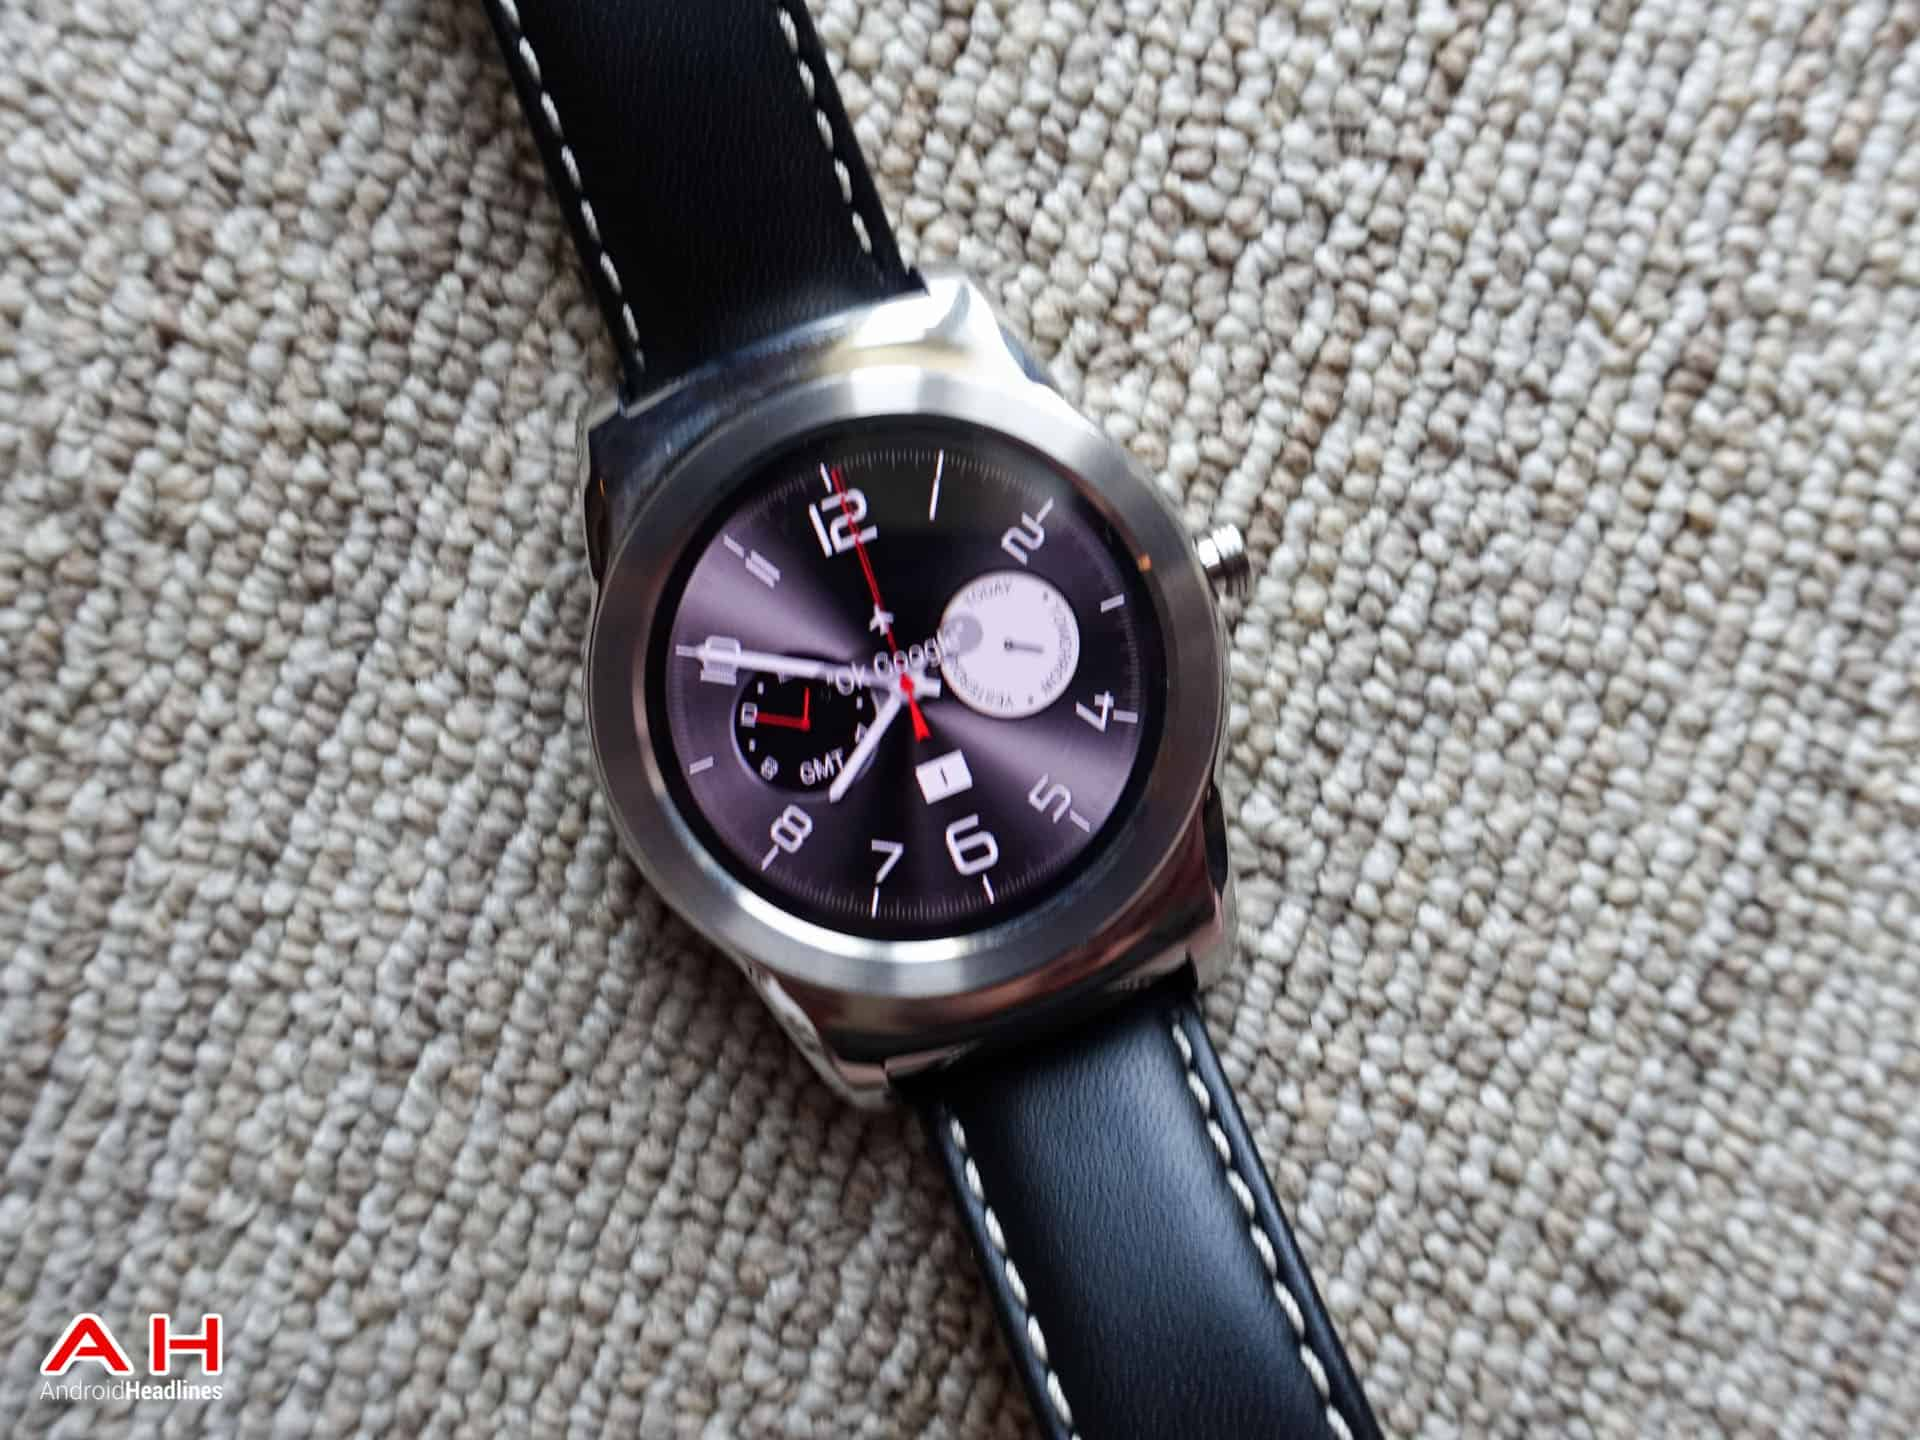 LG-Watch-Urbane-Review-AH-16